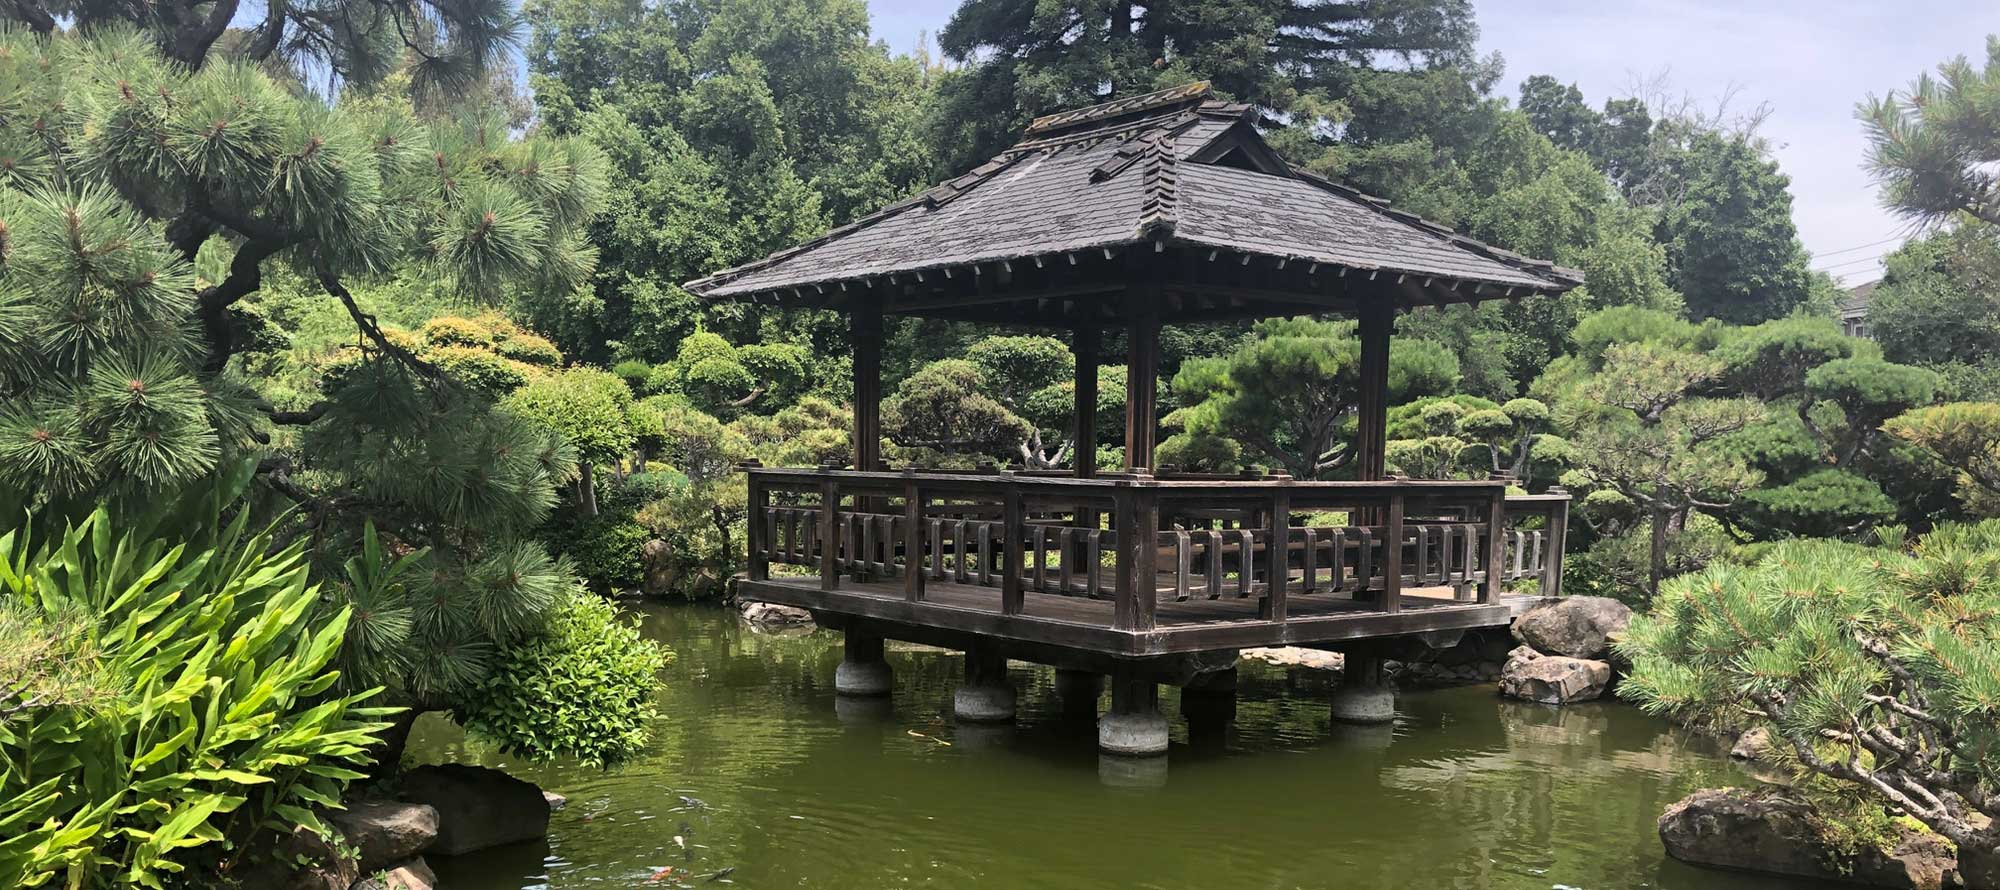 Gazebo over pond